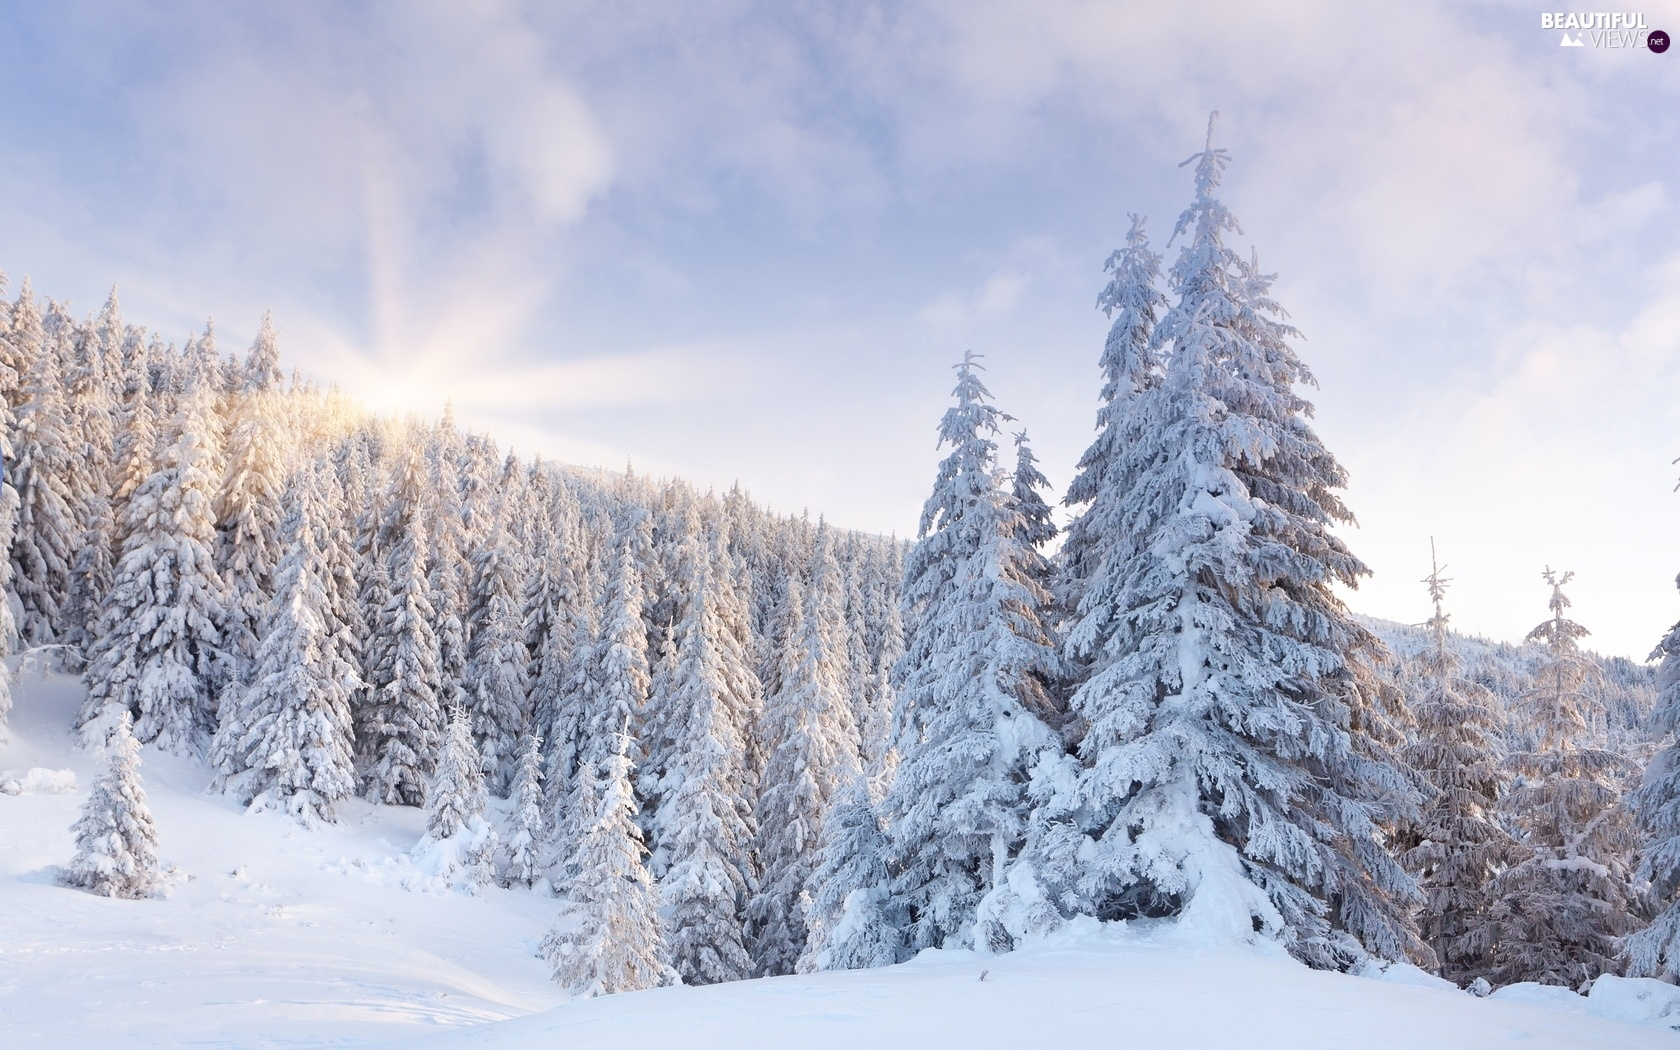 rays of the Sun, viewes, snow, trees